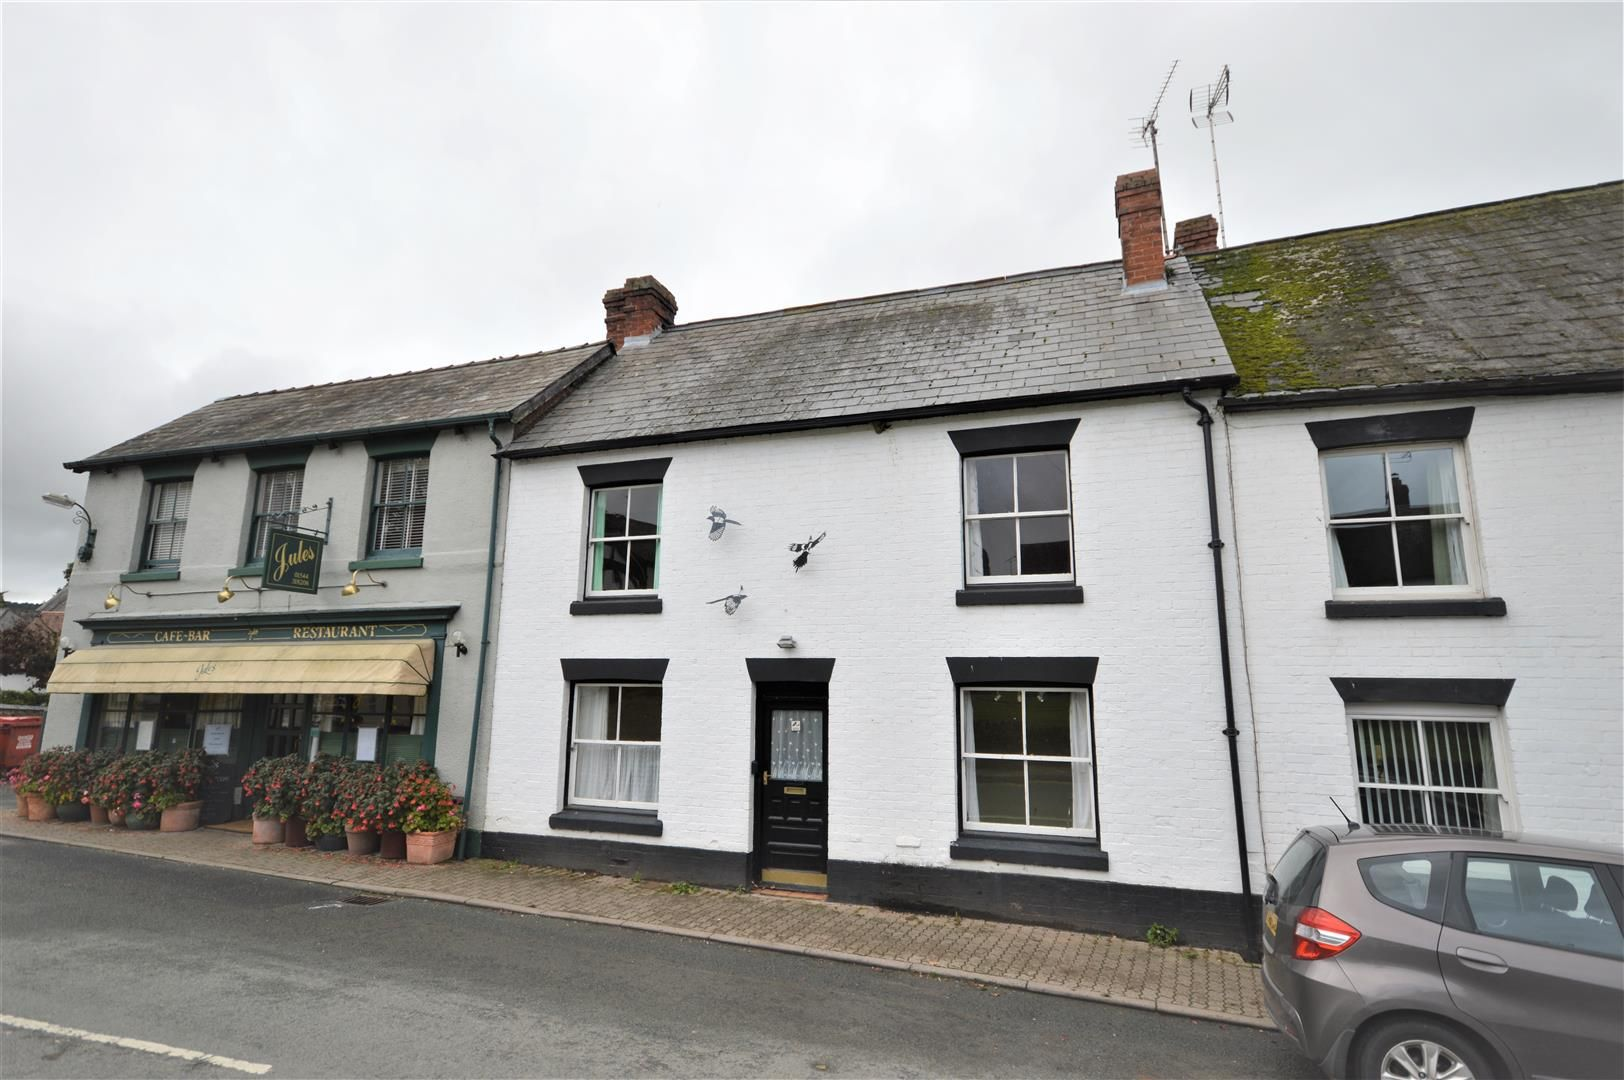 3 bed cottage for sale in Weobley 1